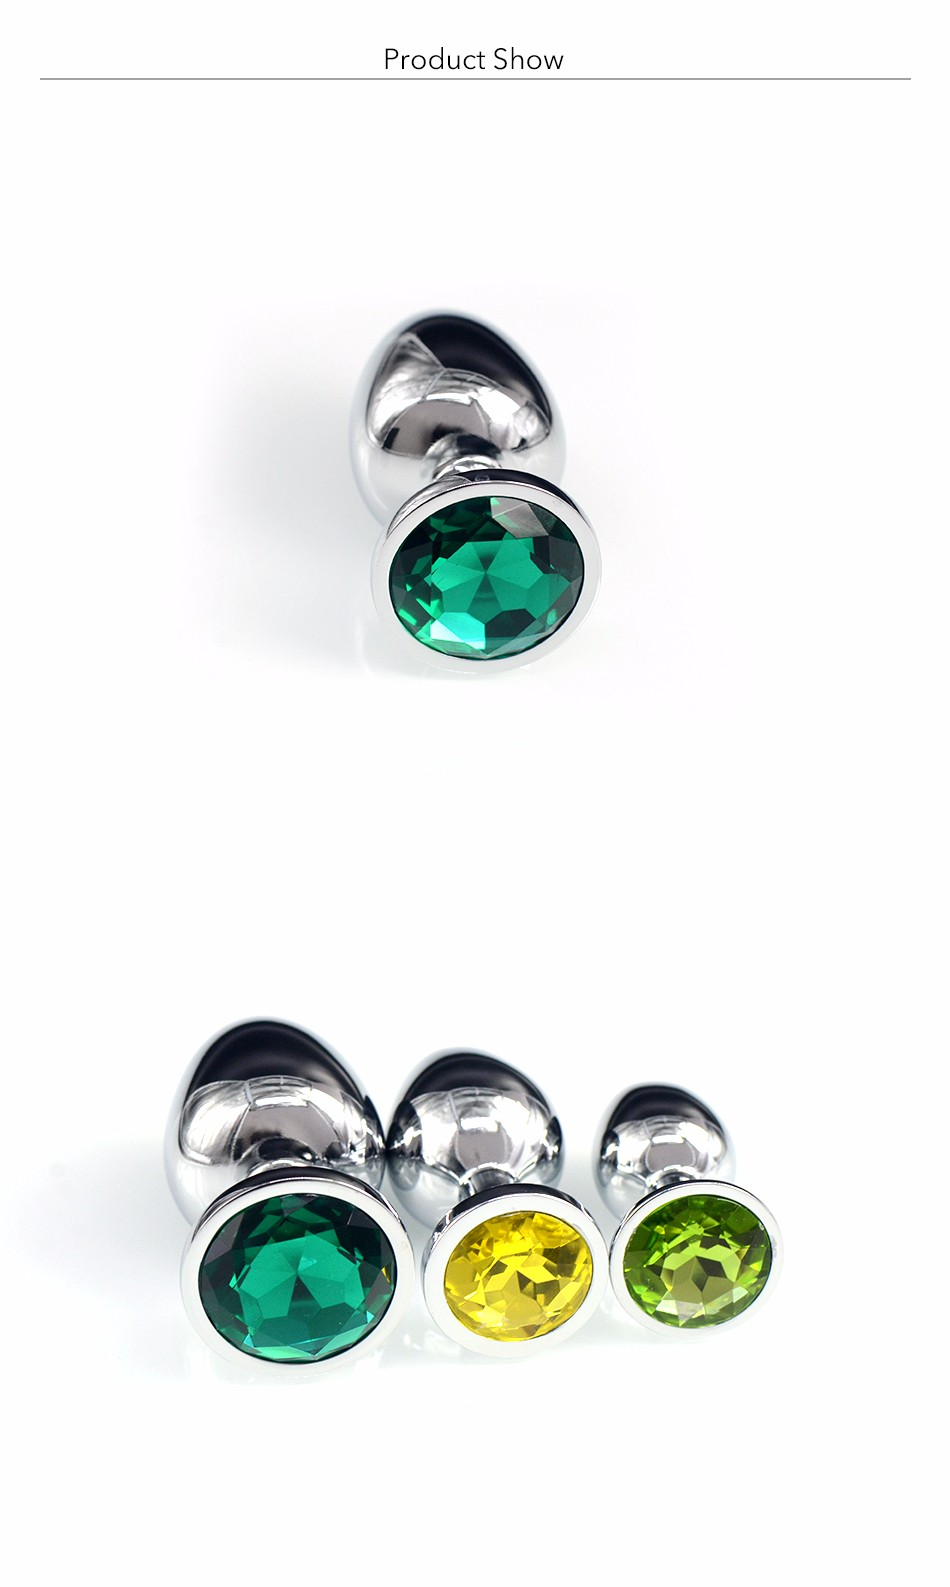 Au Reve One Piece Metal Anal Plug Sex Toys With Crystal Jewelry Booty Beads Sex Toys For Women Men Couple 4